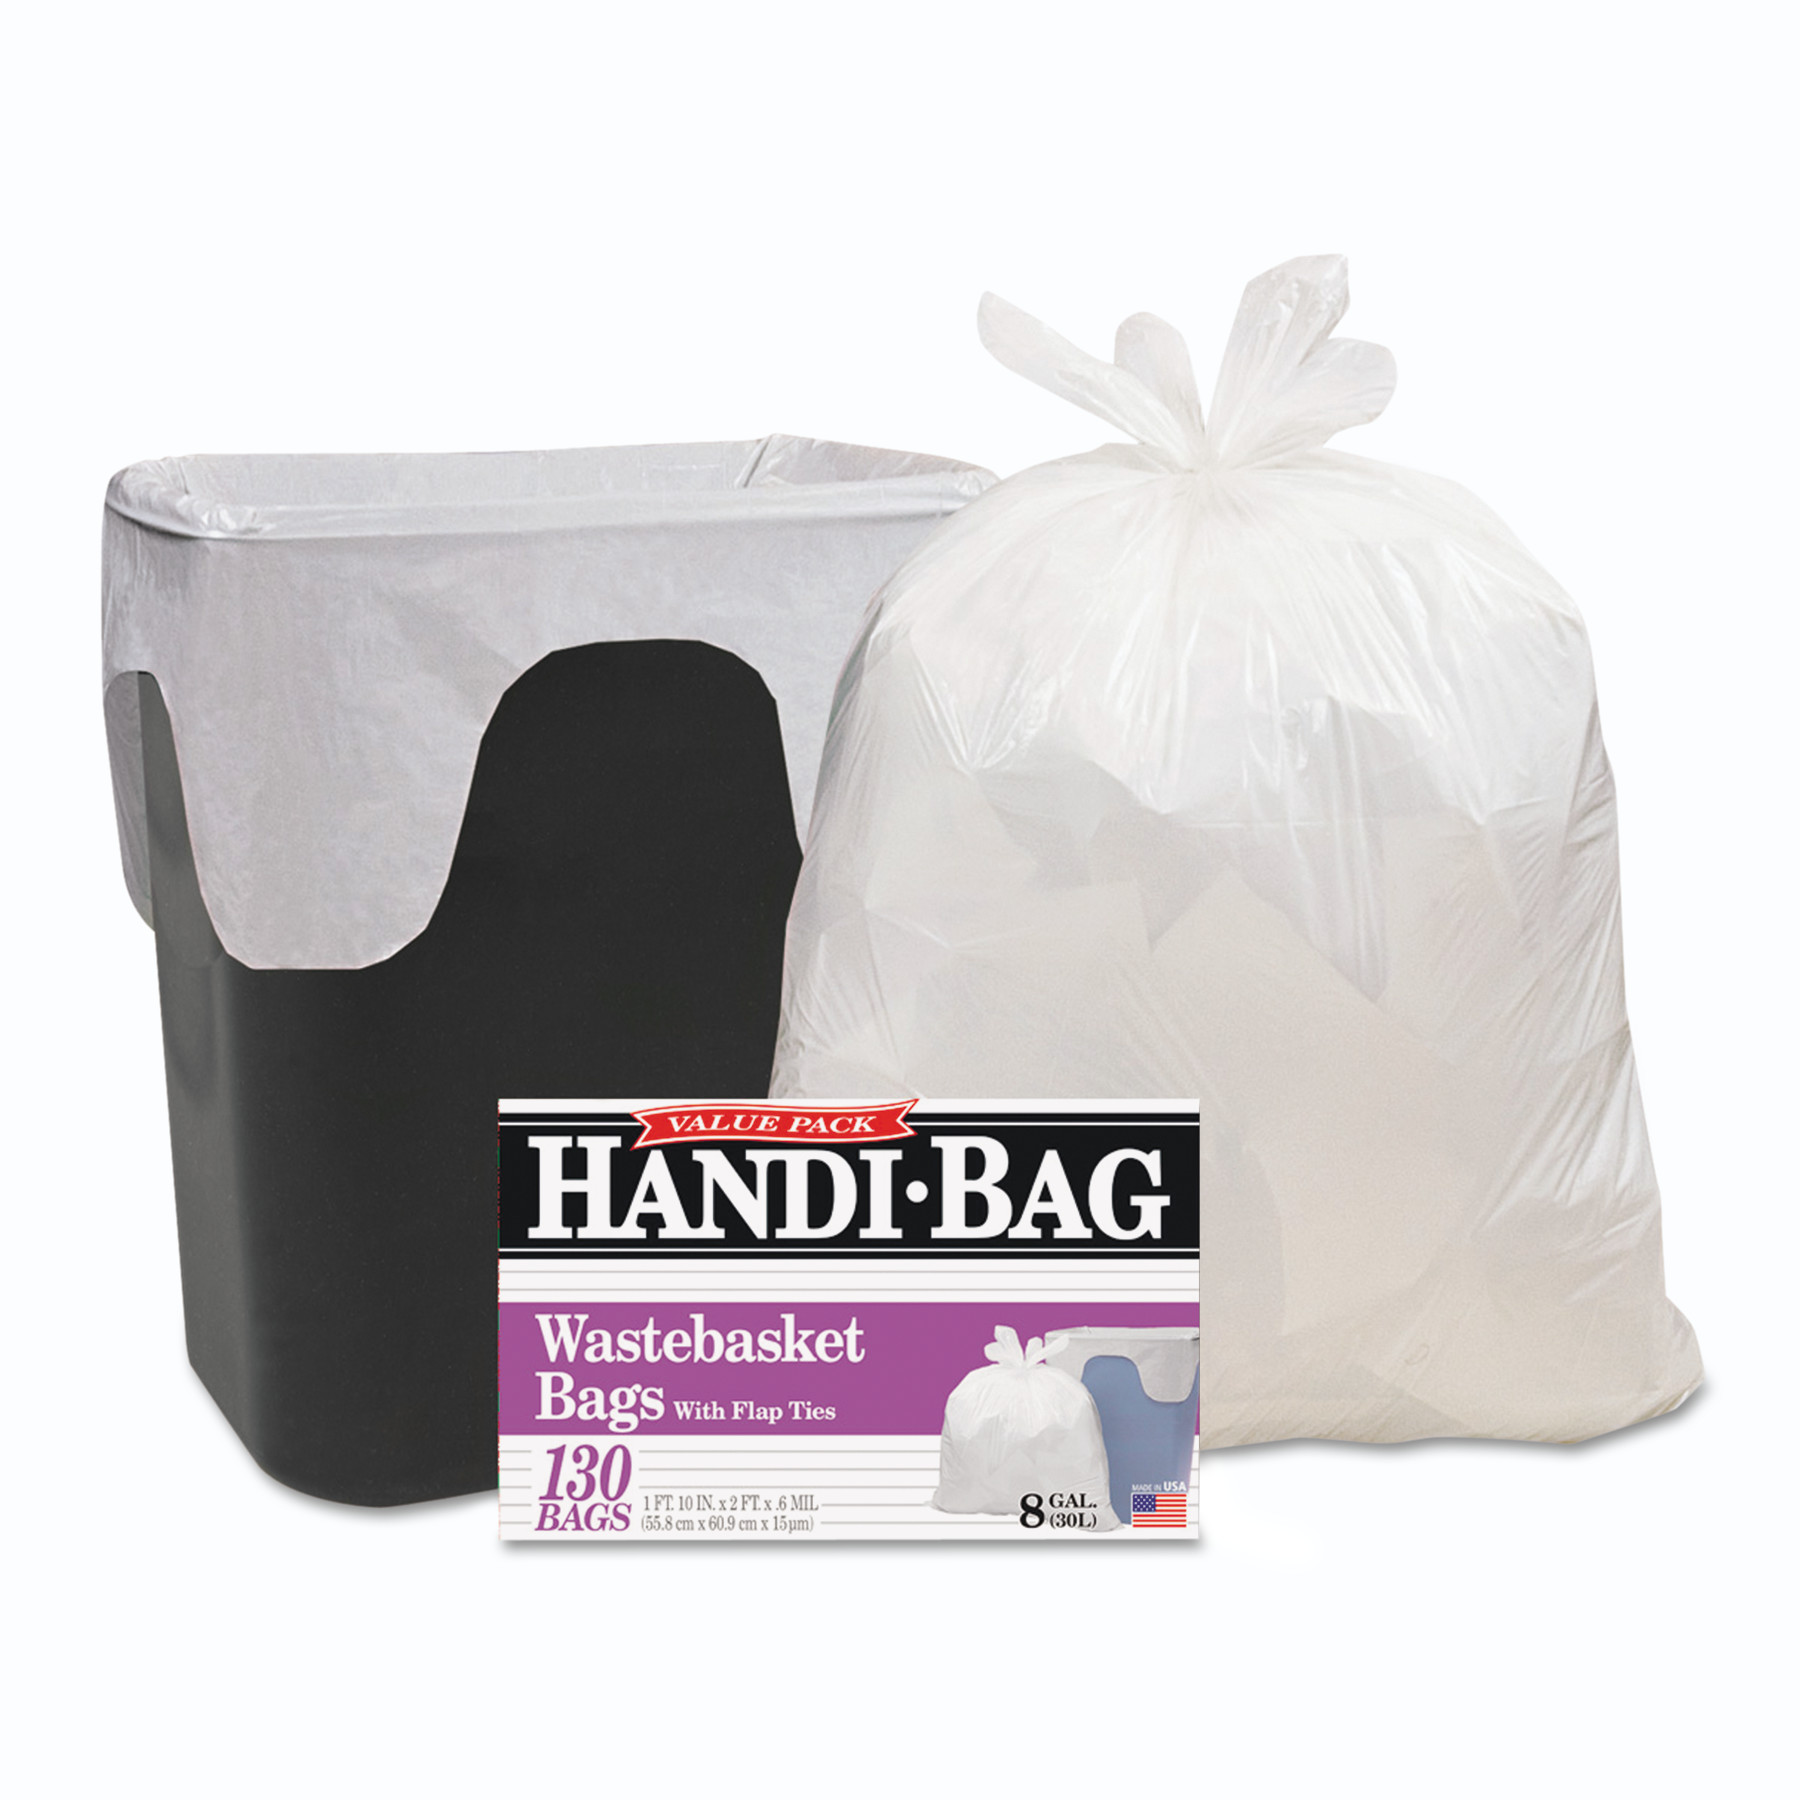 Handi-Bag Handi-Bag Super Value Pack, 8gal, 0.6mil, 22 x 24, White, 130/Box, 6 Box/Carton